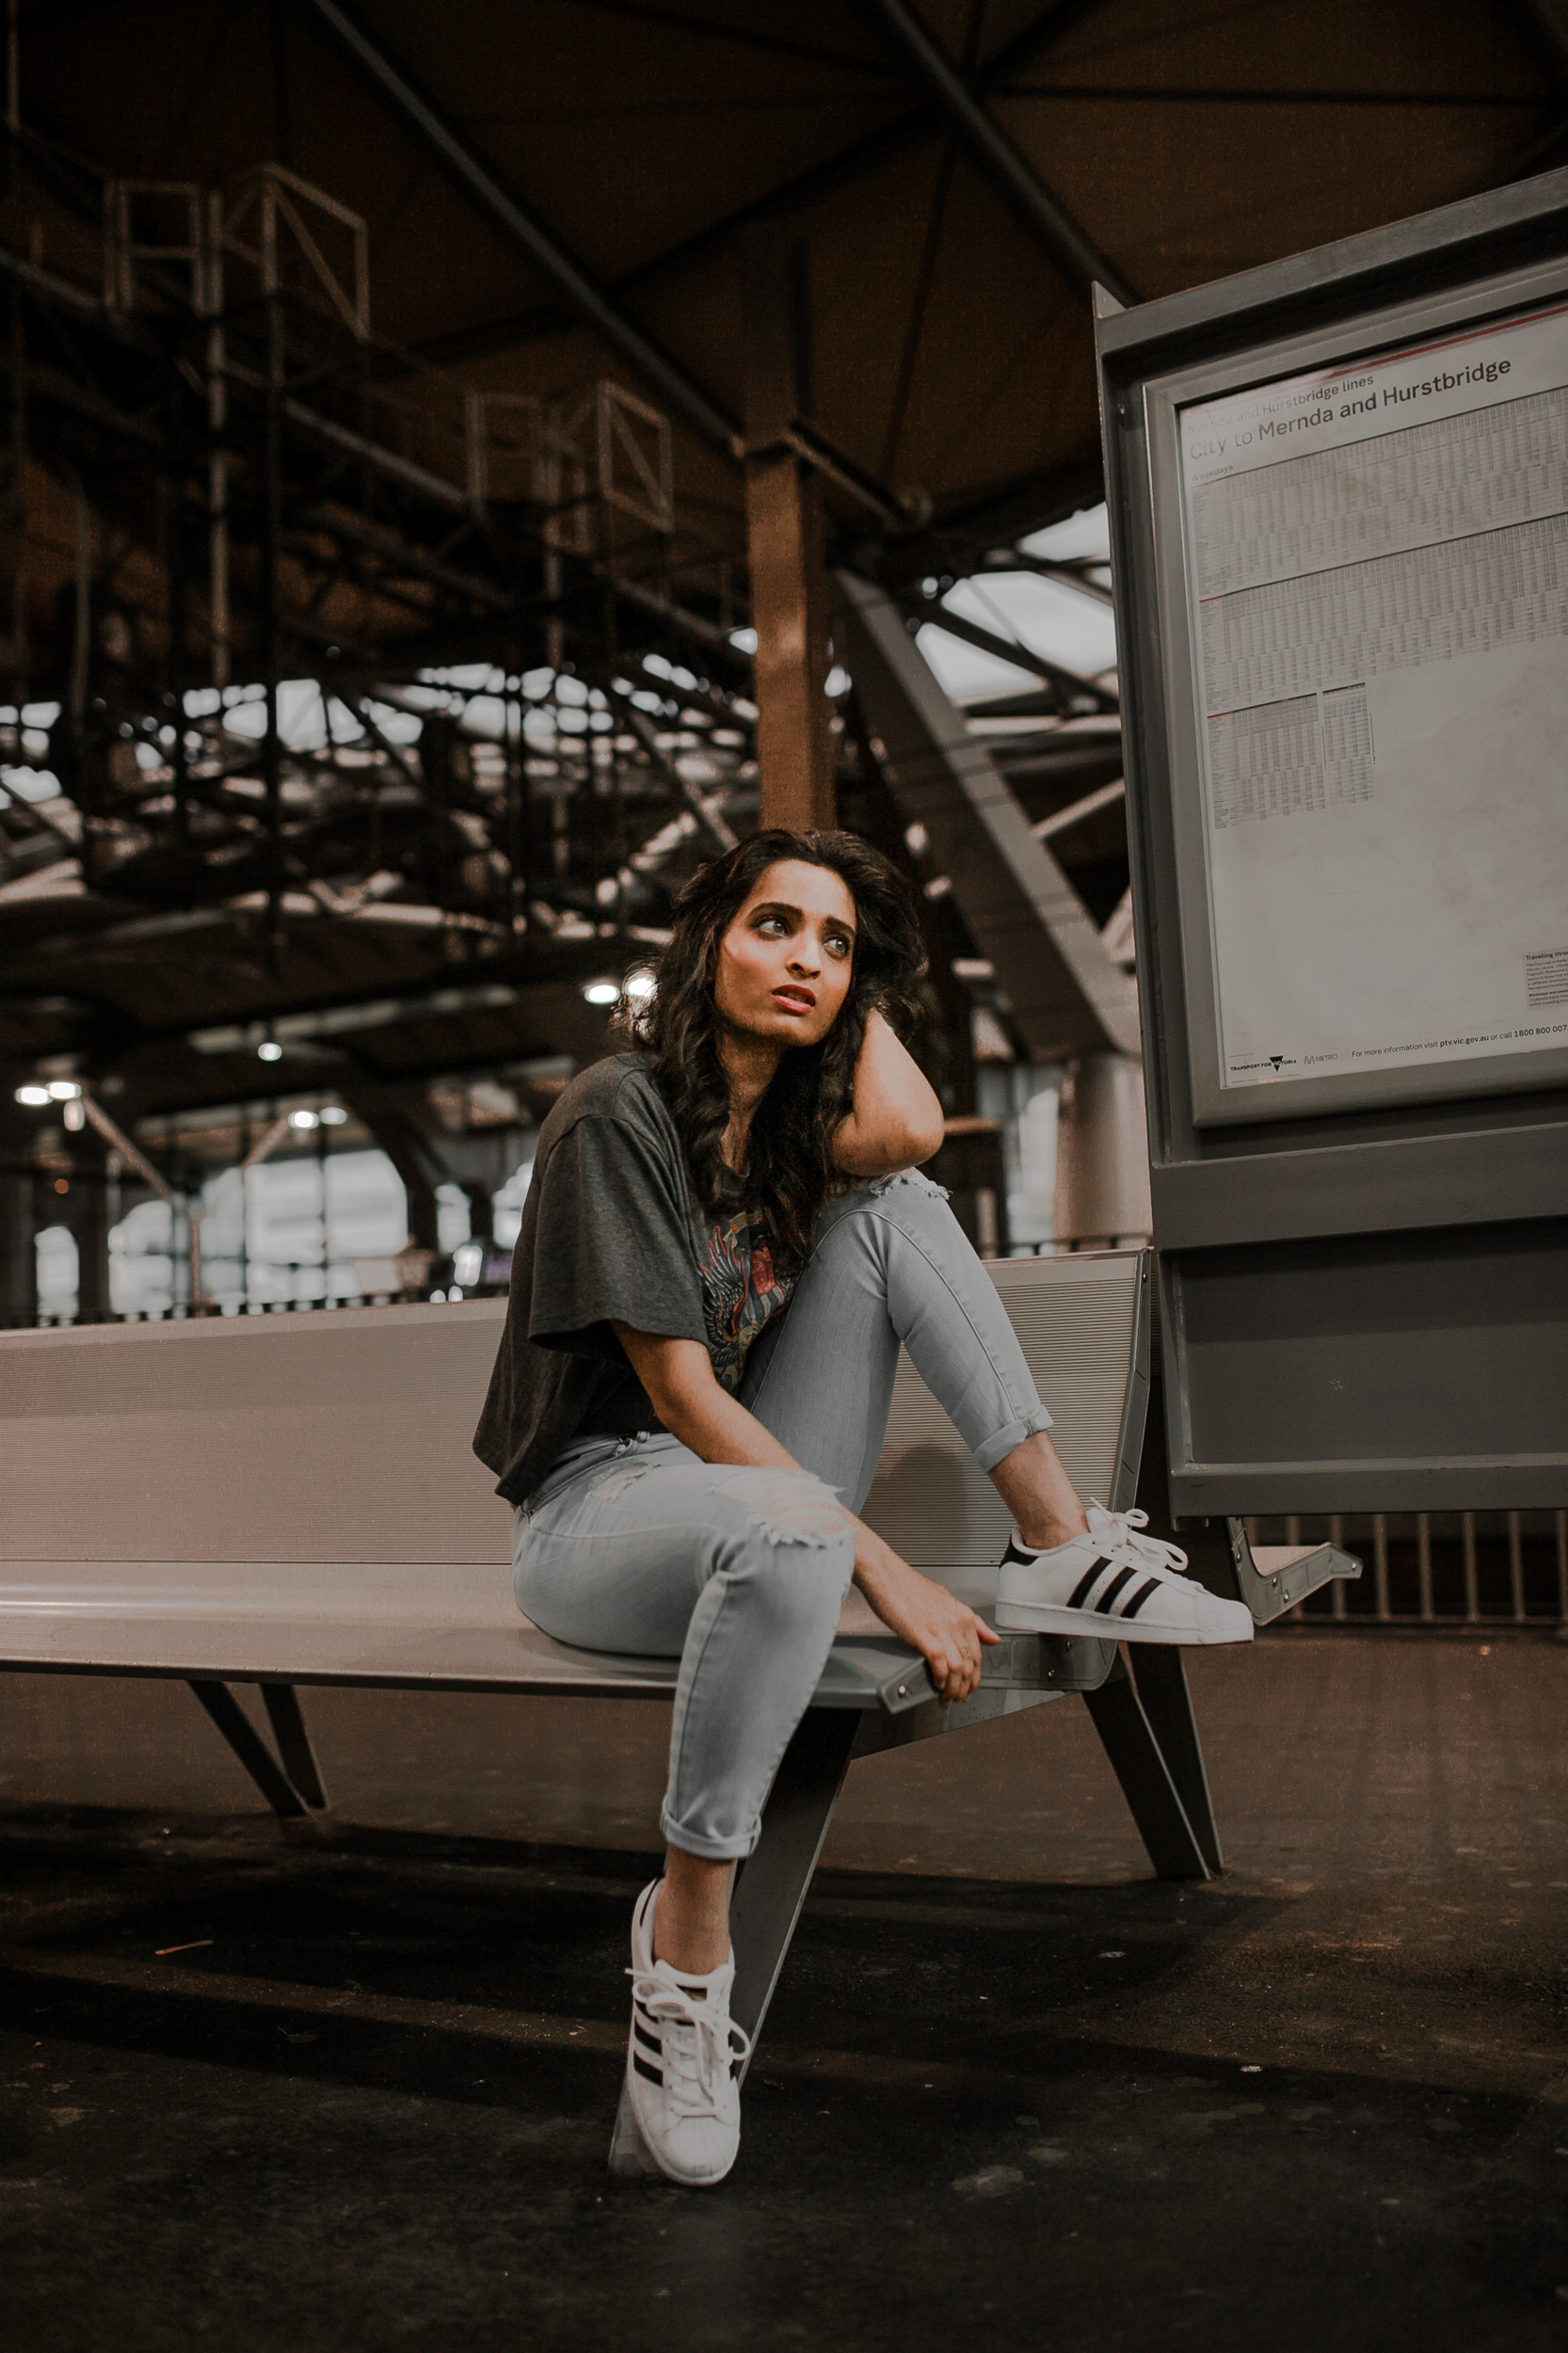 Girl sitting on bench wearing casual jeans and tee-shirt outfit with sneakers at a train station in Melbourne